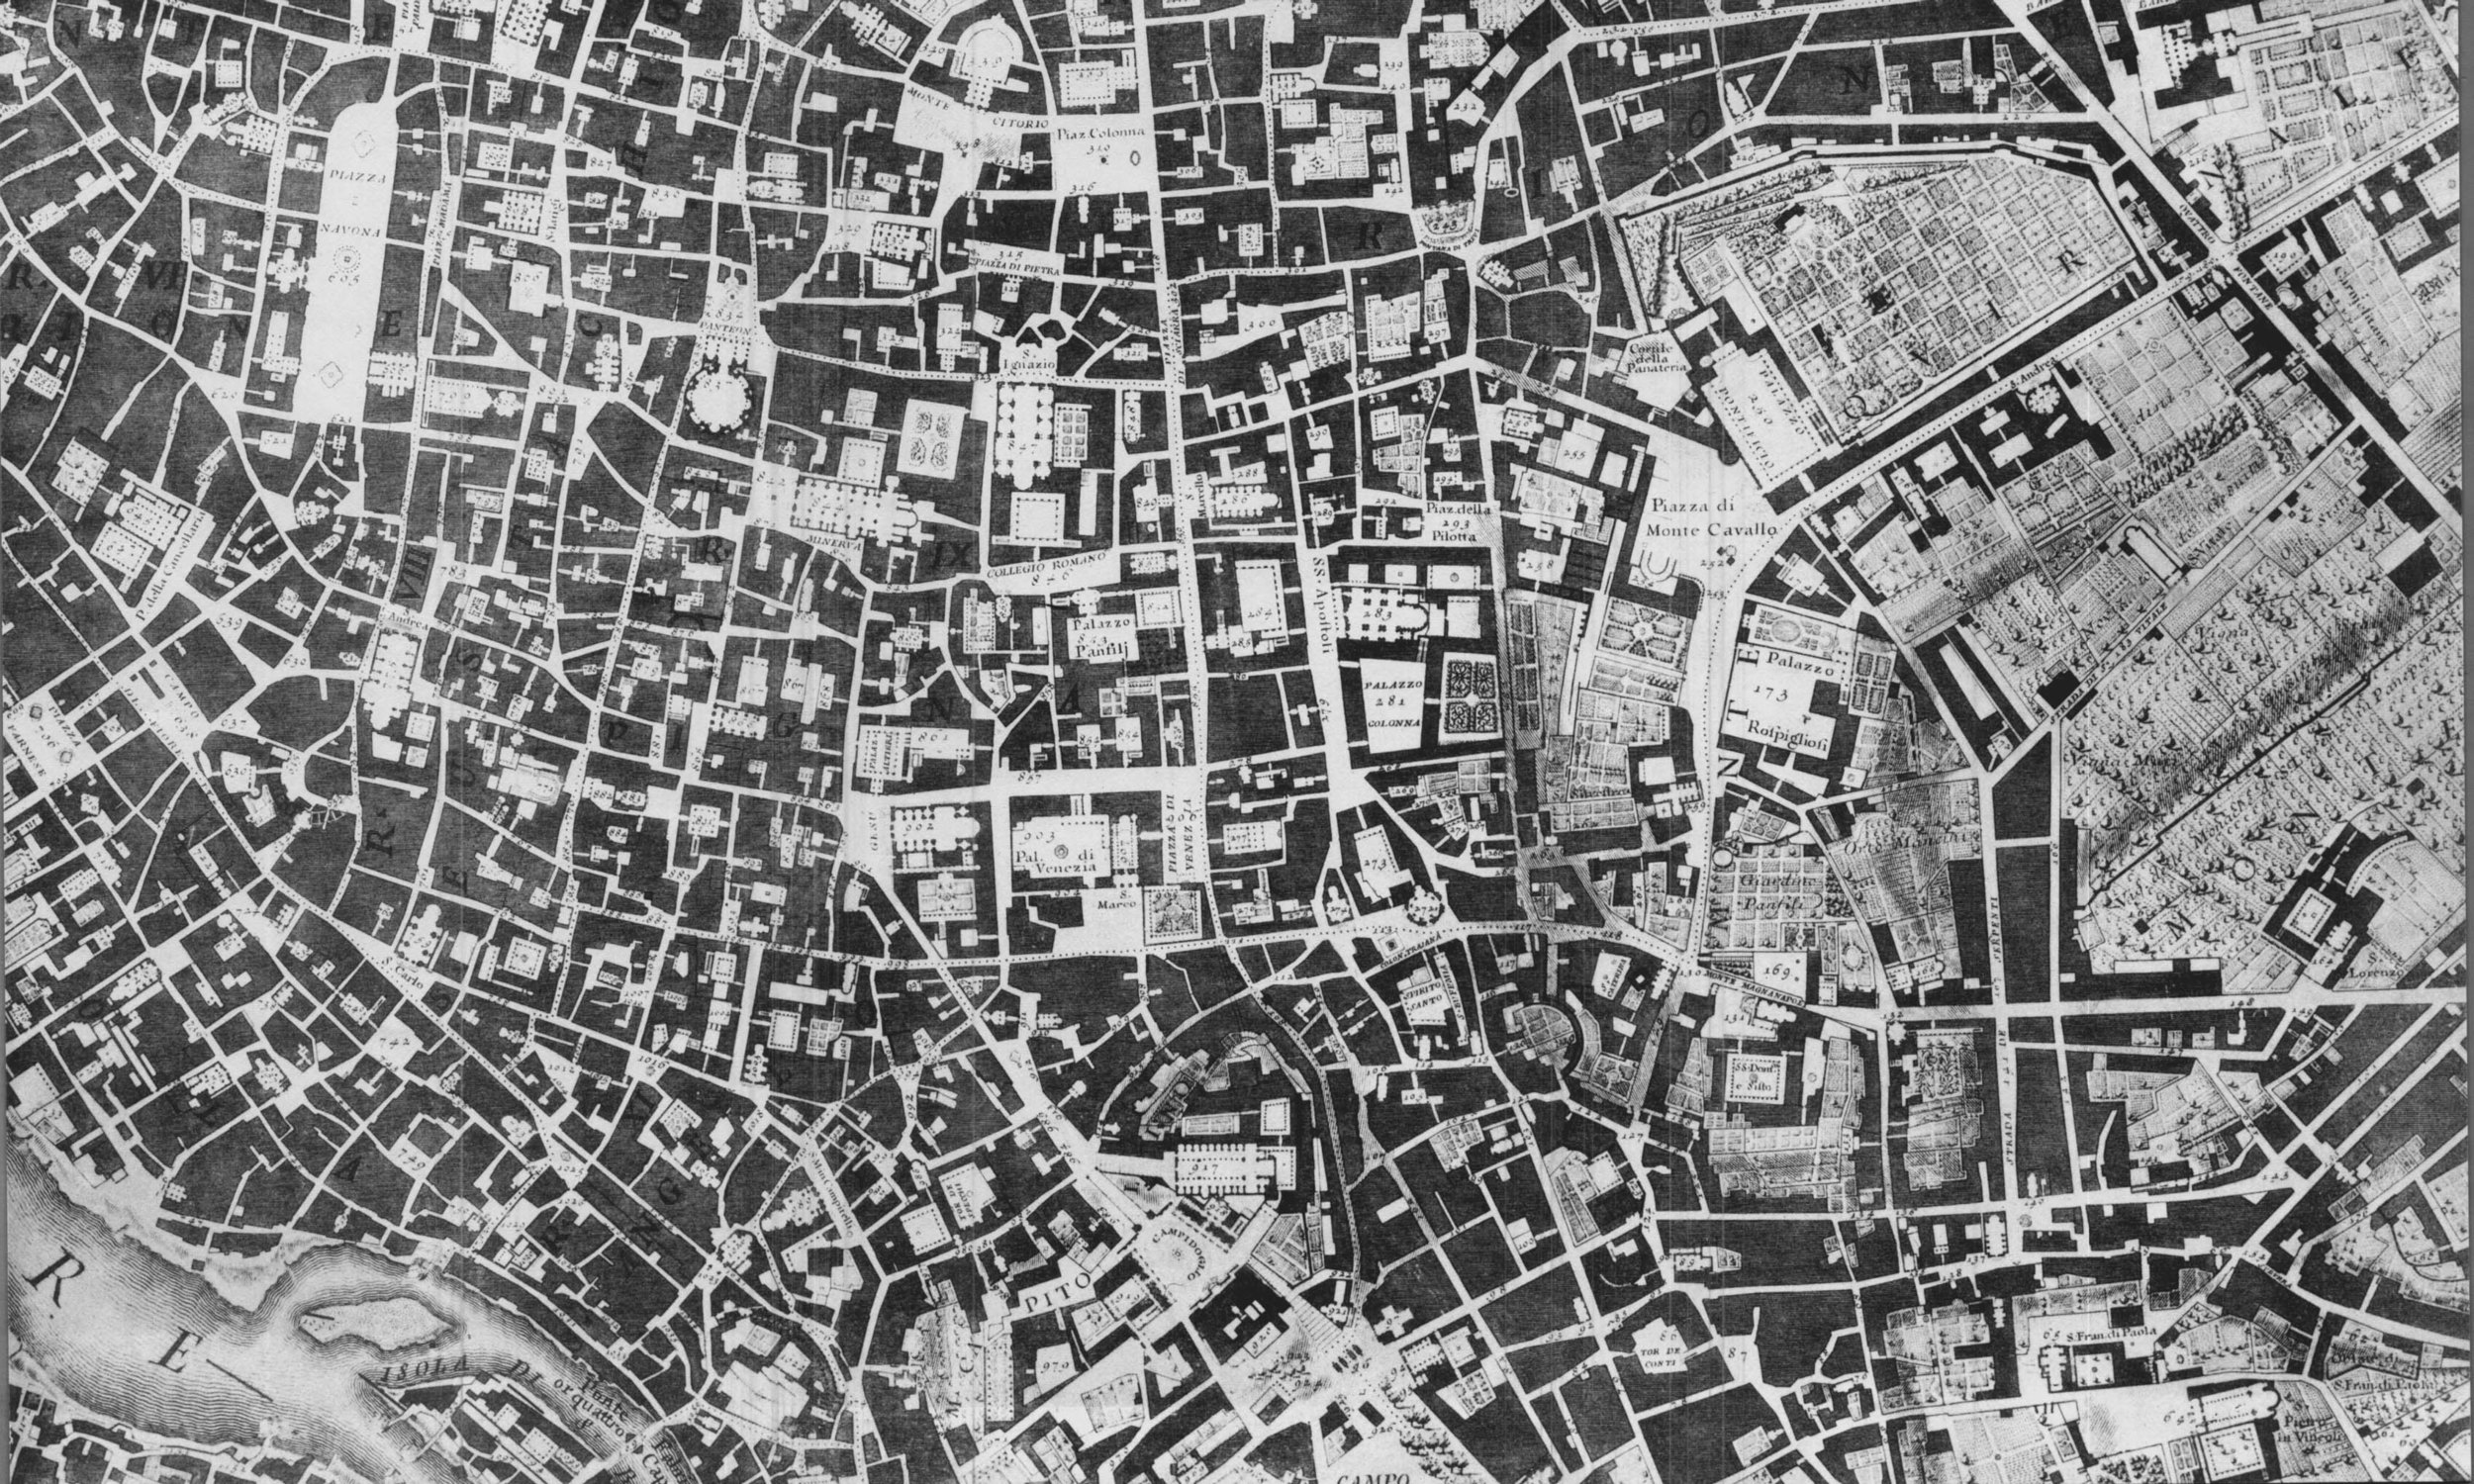 Nolli map fragment - Piazza Navona and Pantheon in the top left quadrant.